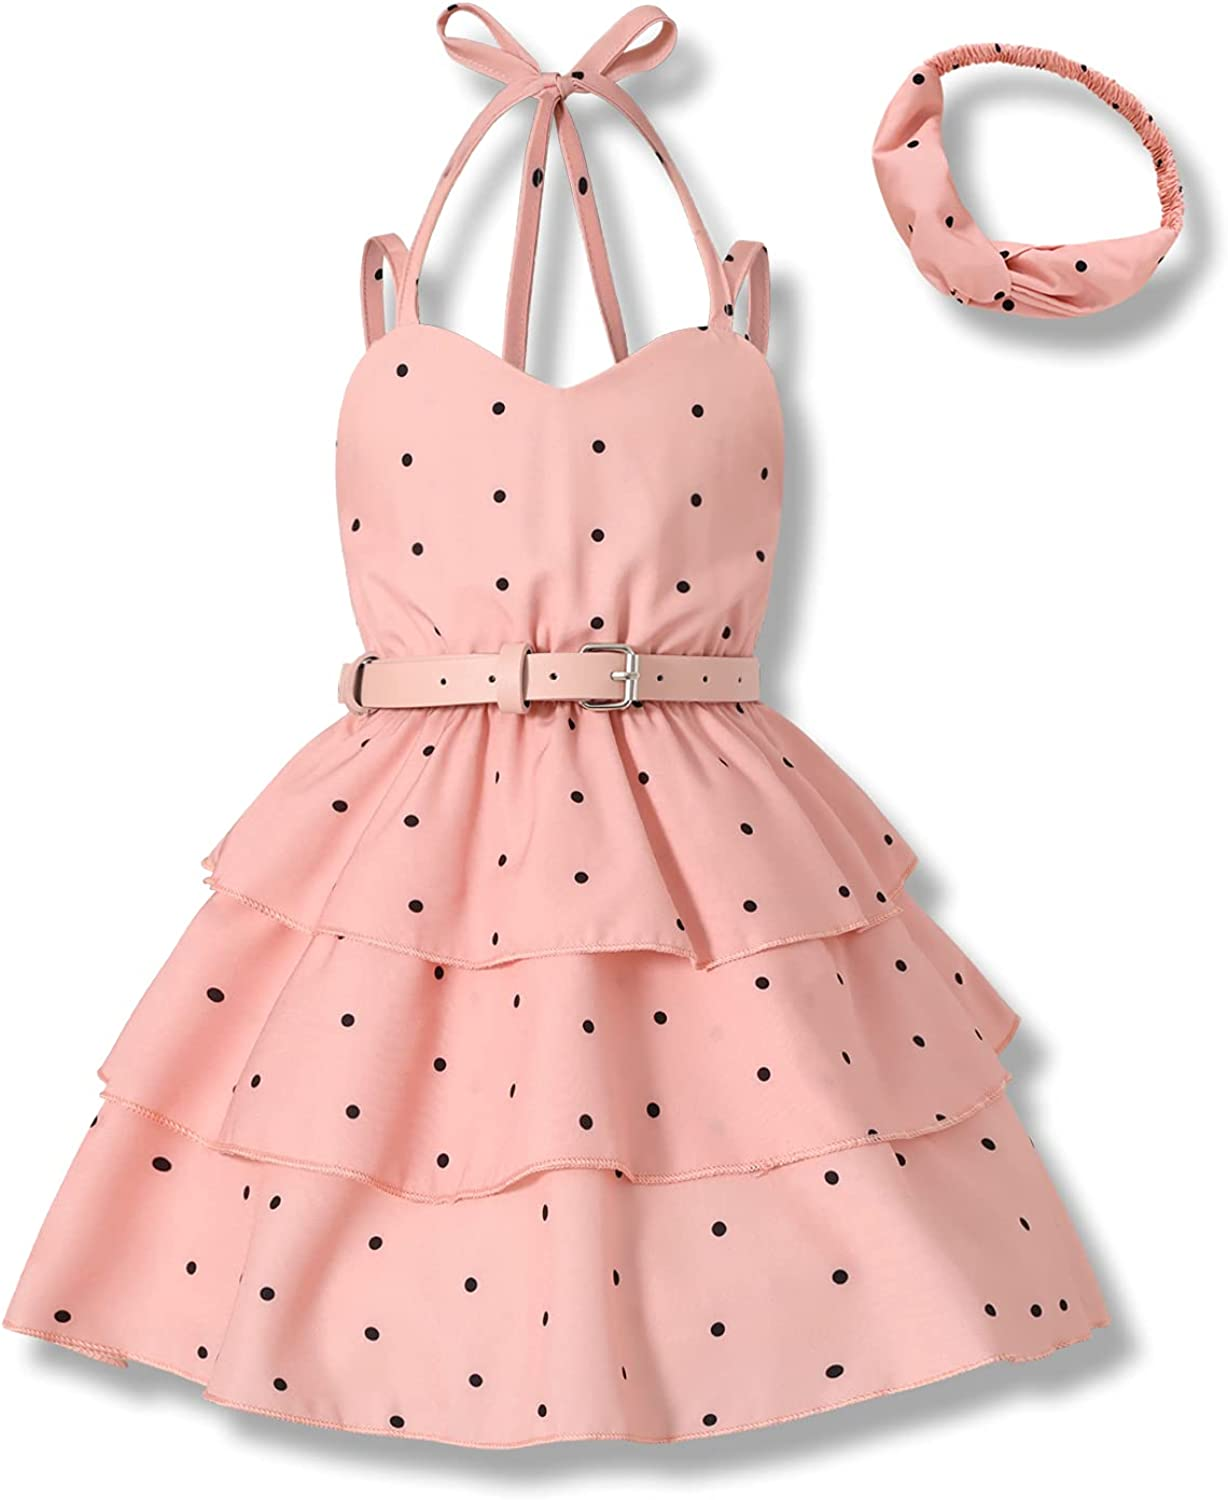 Toddler Girls Max 82% OFF Clothes Dress Cheap Halter Pleated Party 3-Layer Dots Dr